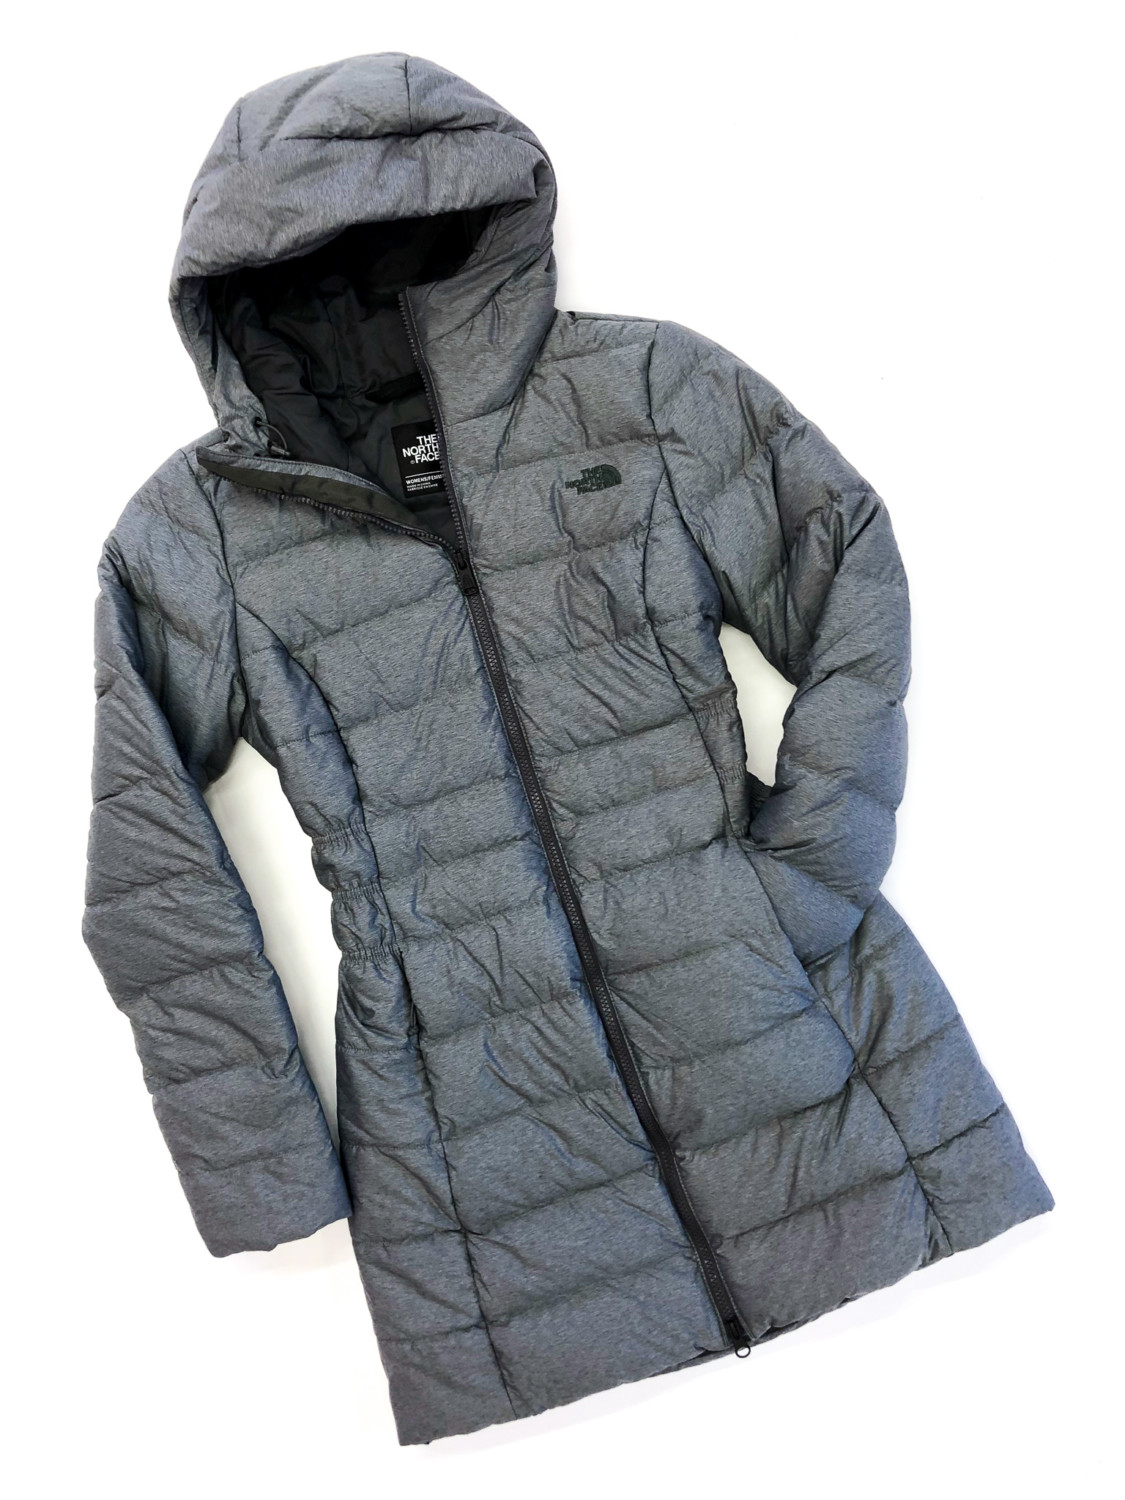 North Face Coat – Original Retail: $249, CWS: $65